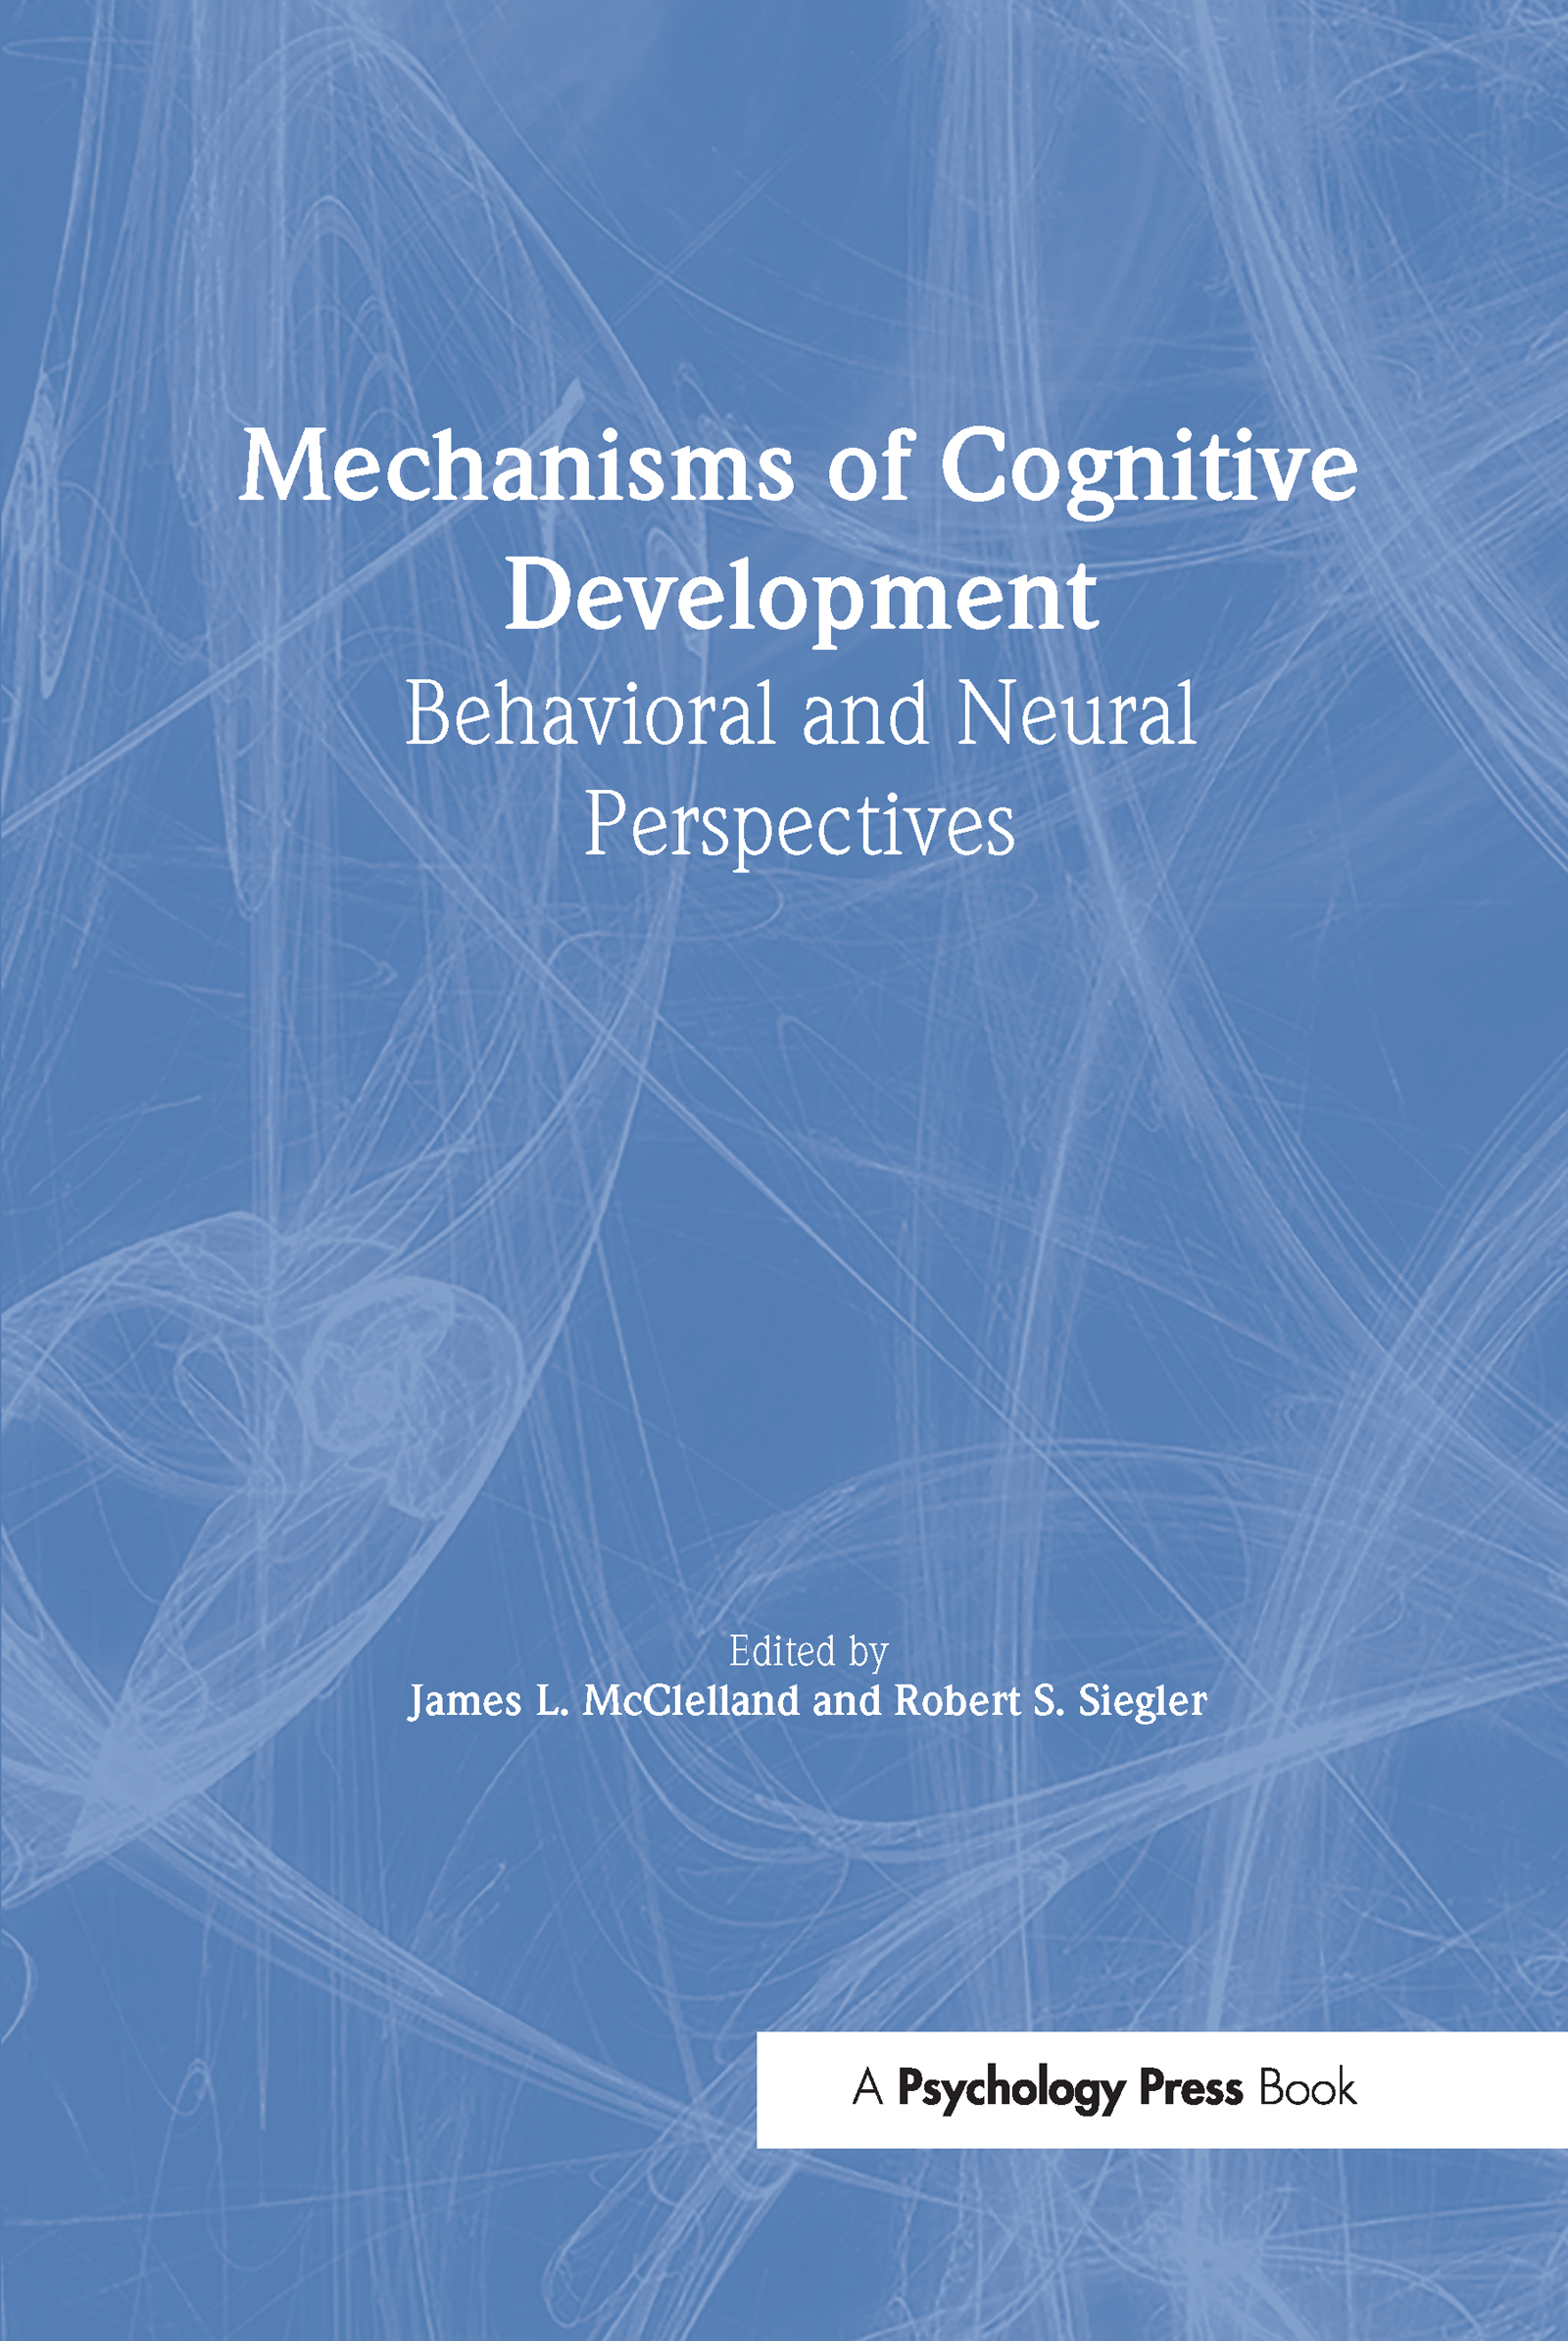 Mechanisms of Cognitive Development